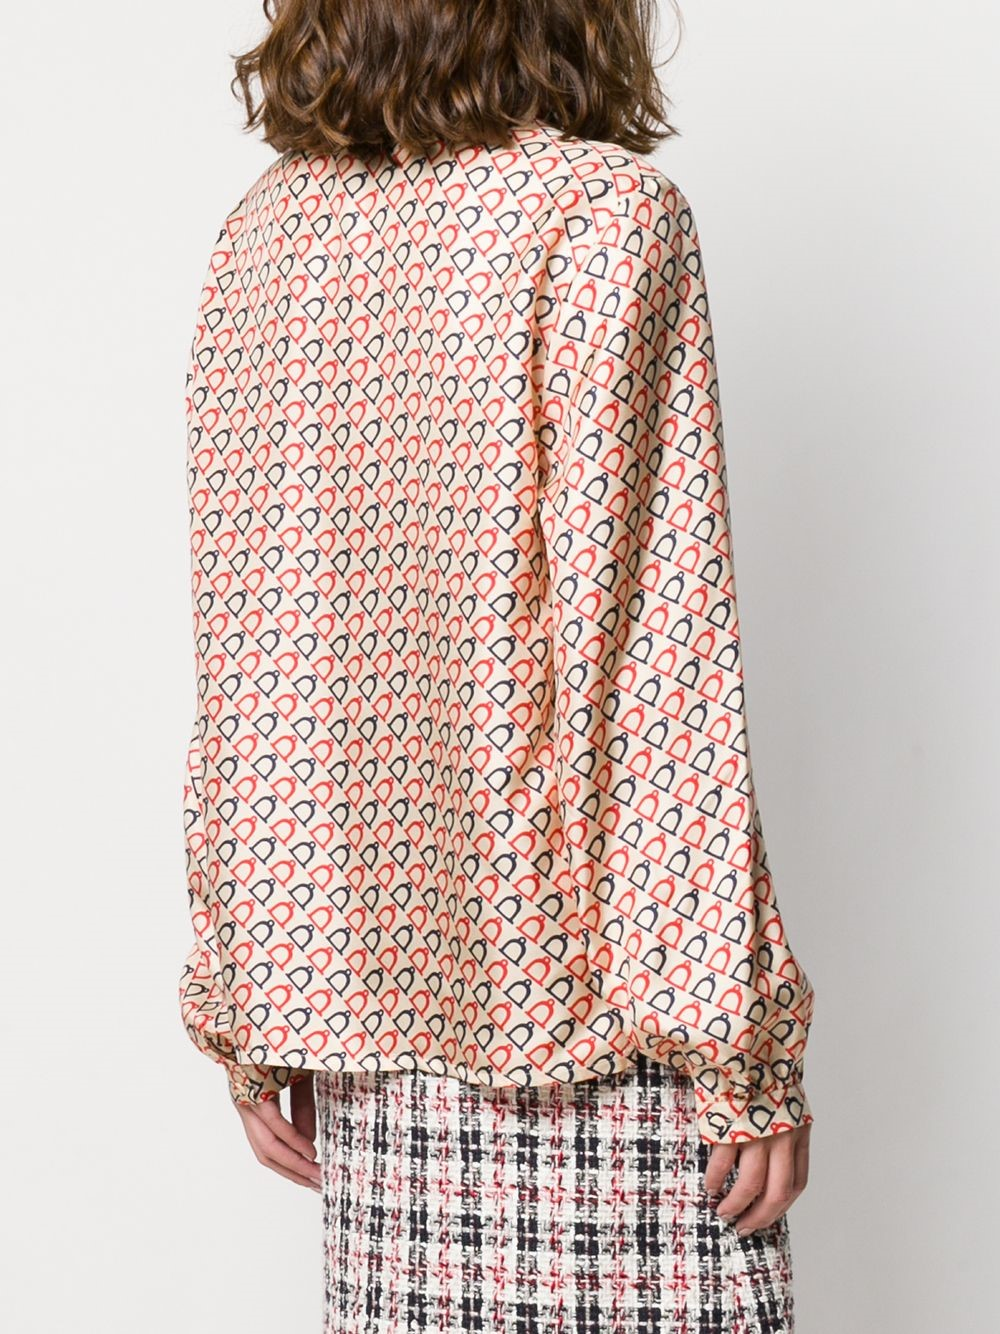 fd8785a3991b gucci PRINTED SHIRT available on montiboutique.com - 28148